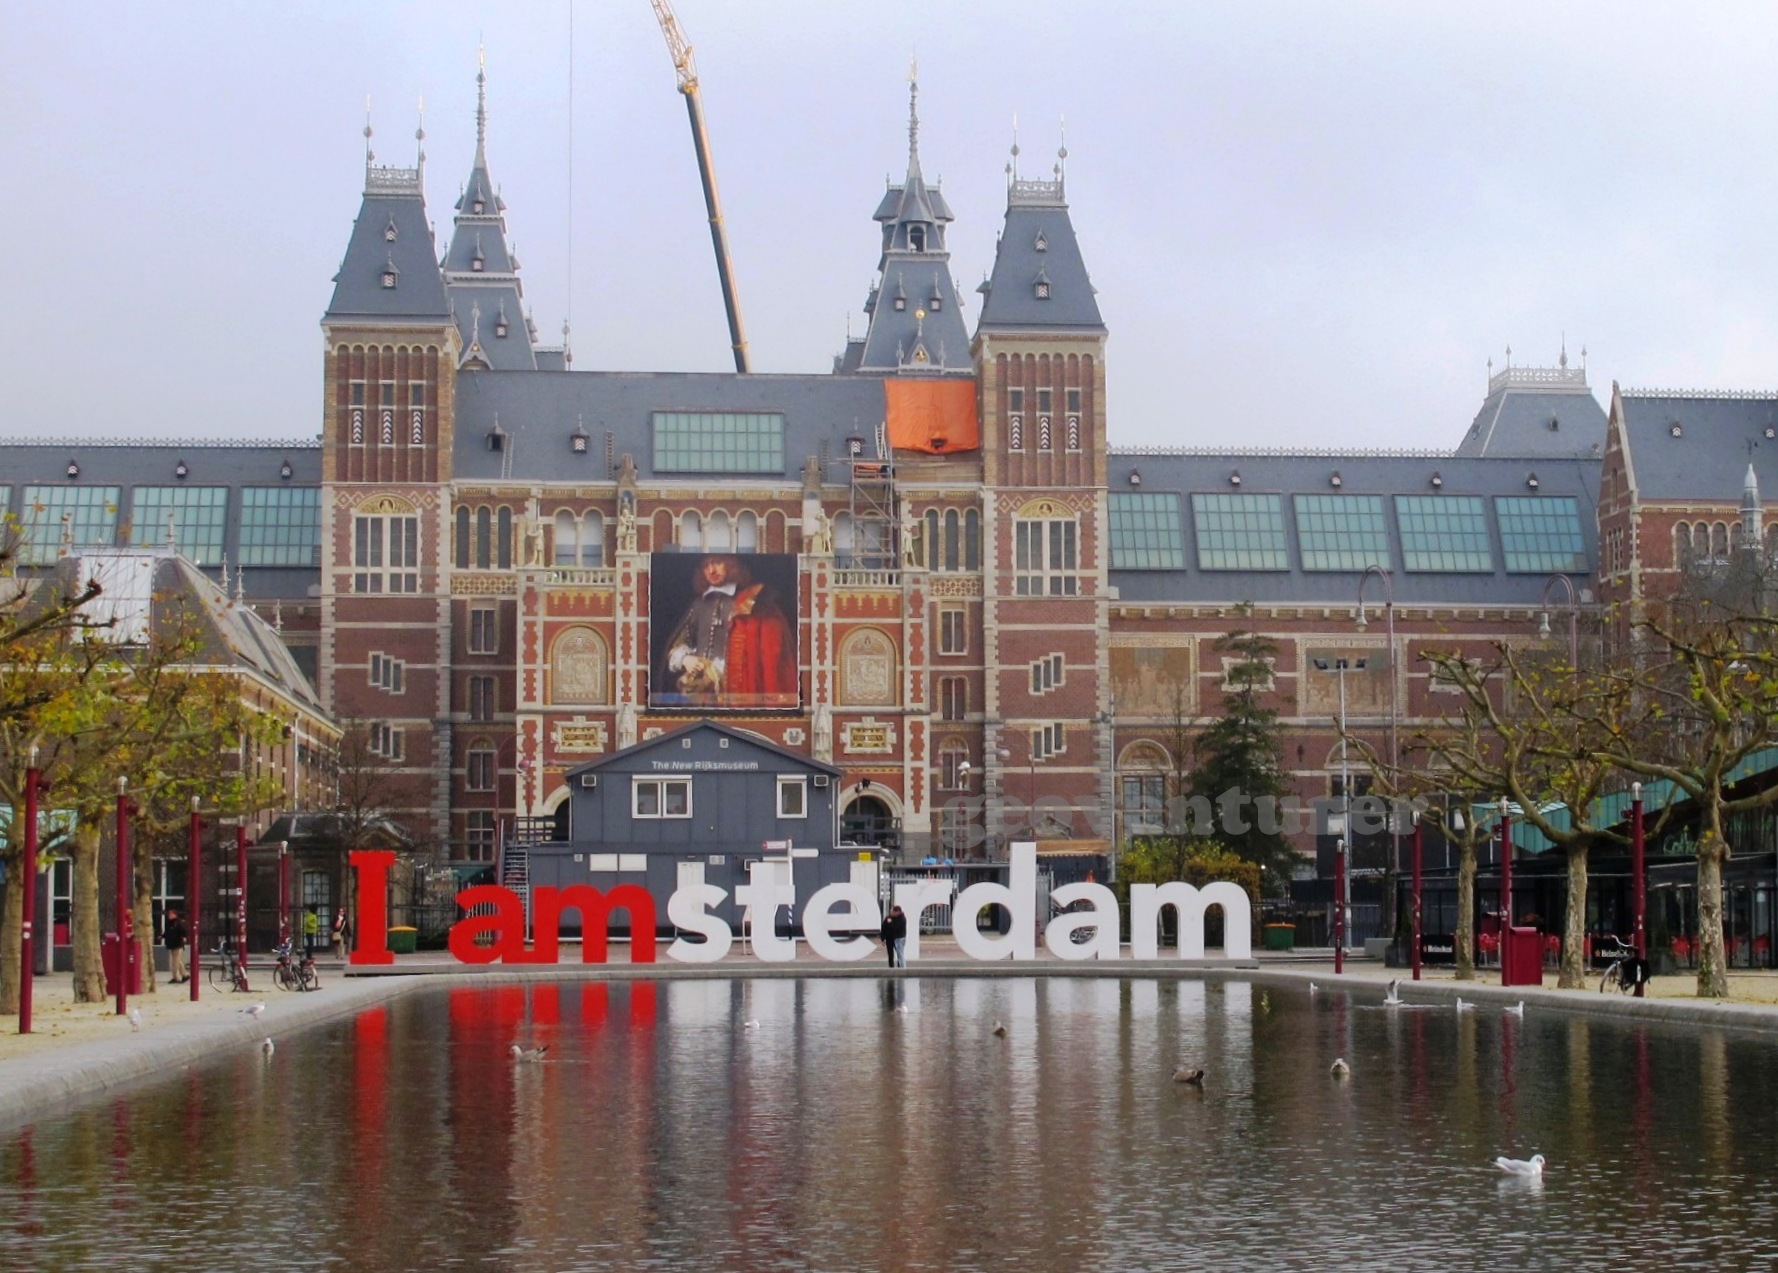 """""""I amsterdam"""": Playing tourist in the Dutch capital 